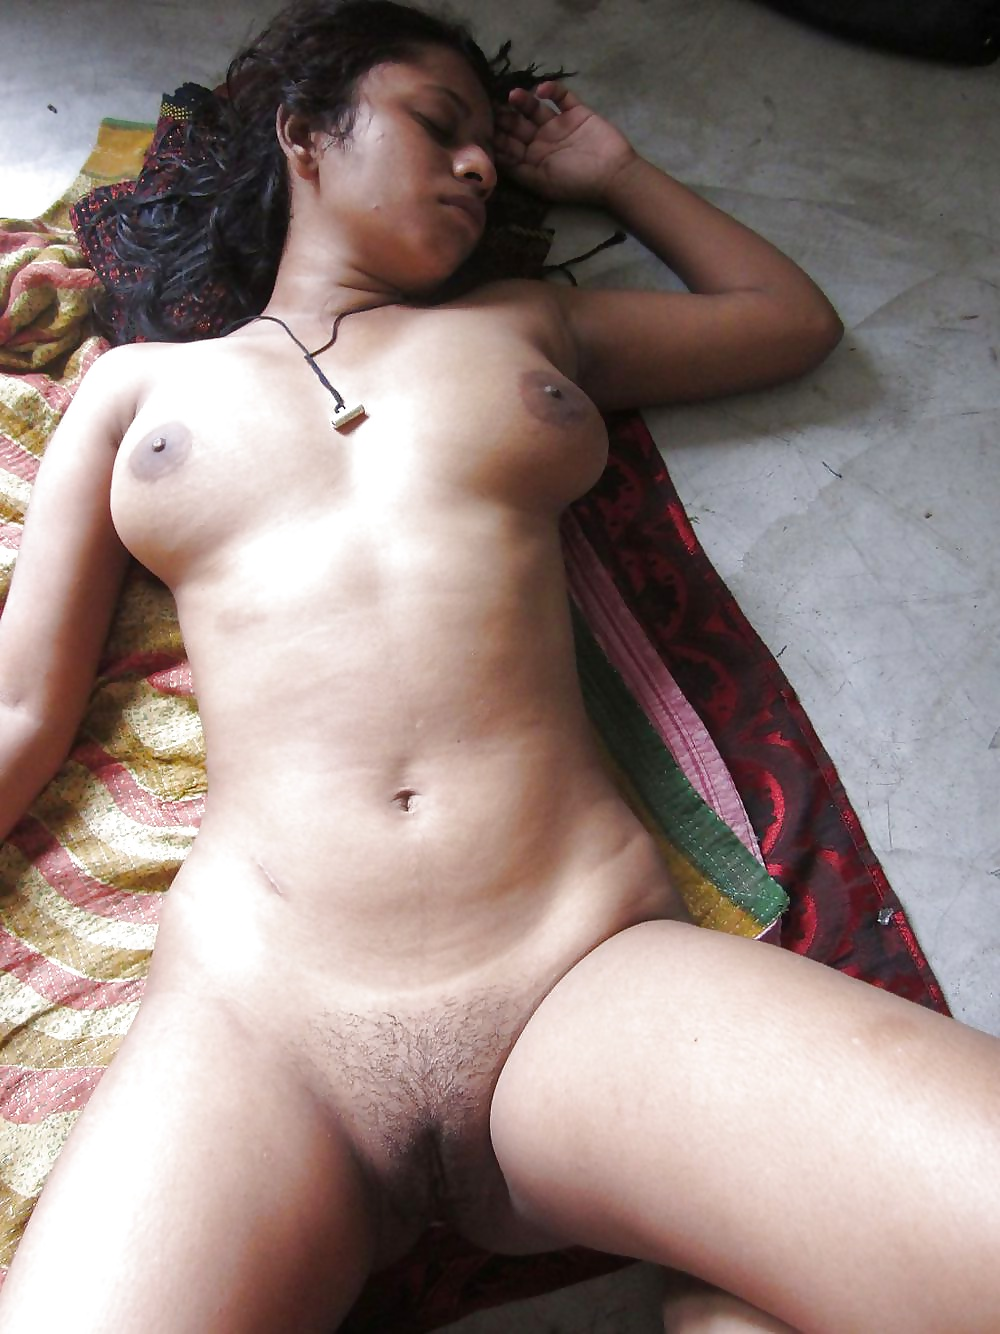 Xxx girl pic indian